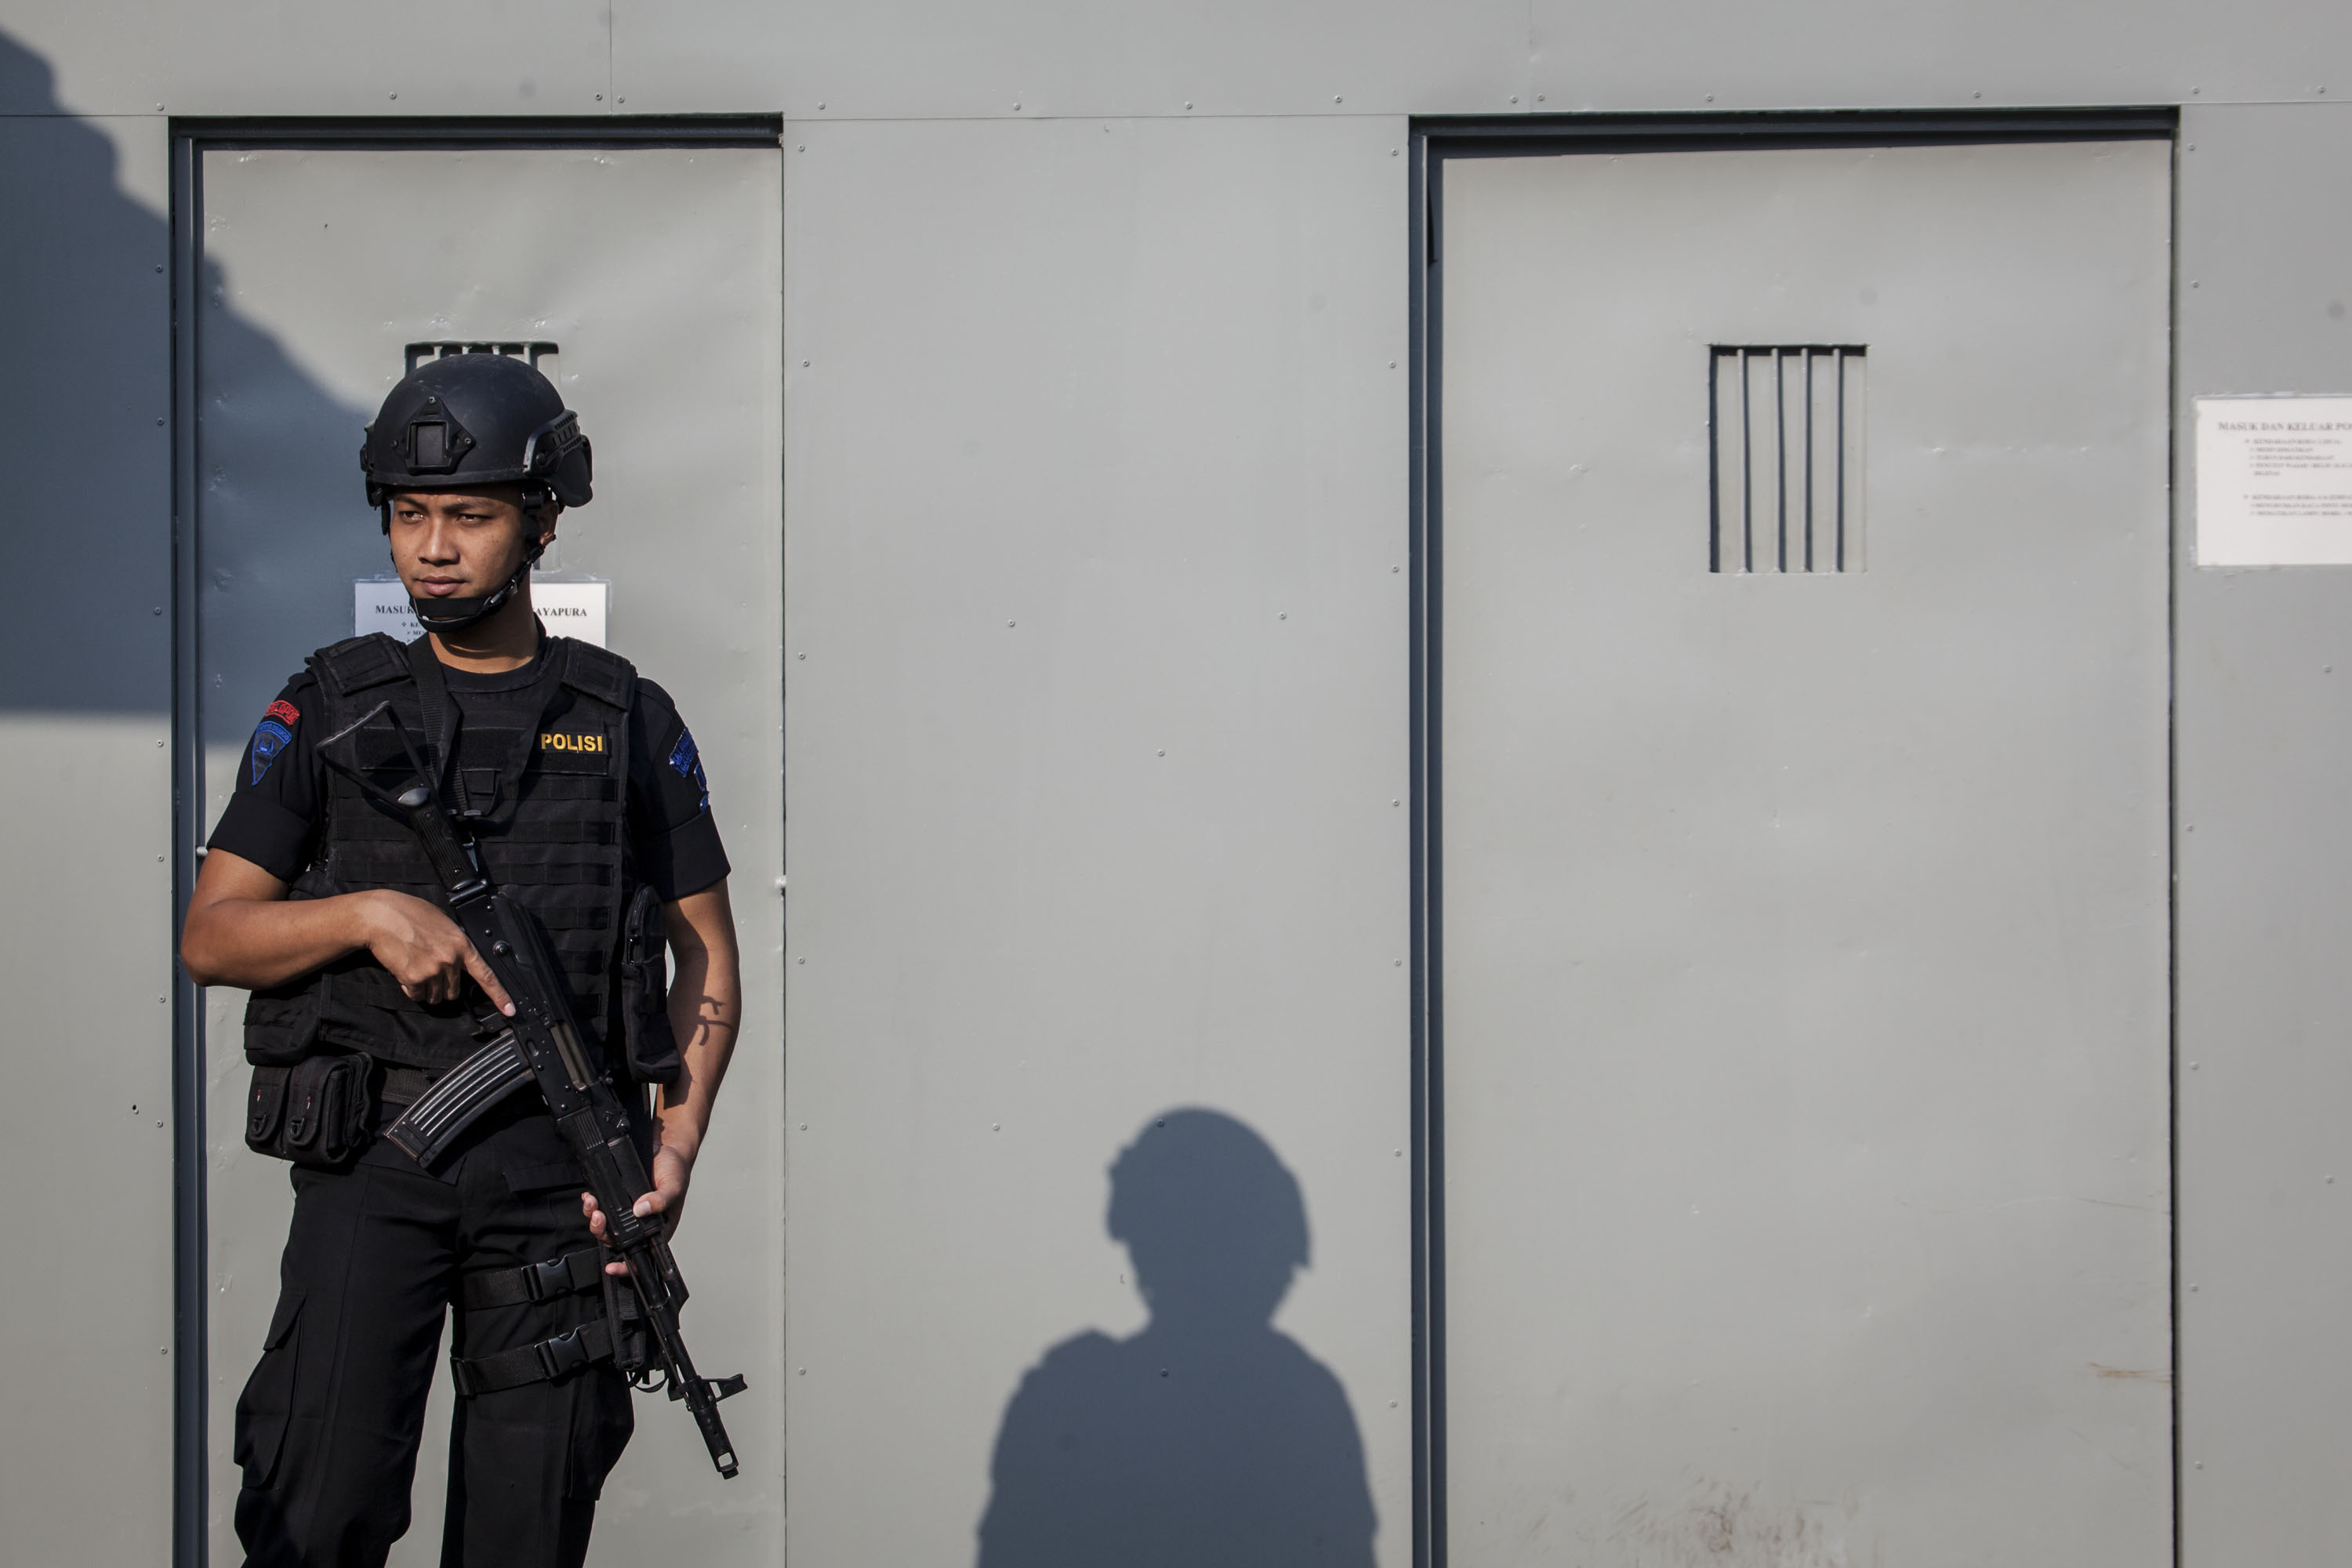 An Indonesian policeman stands guard at the entrance gate to Nusakambangan prison, ahead of a third round of drug executions on July 28, 2016 in Cilacap, Central Java, Indonesia.